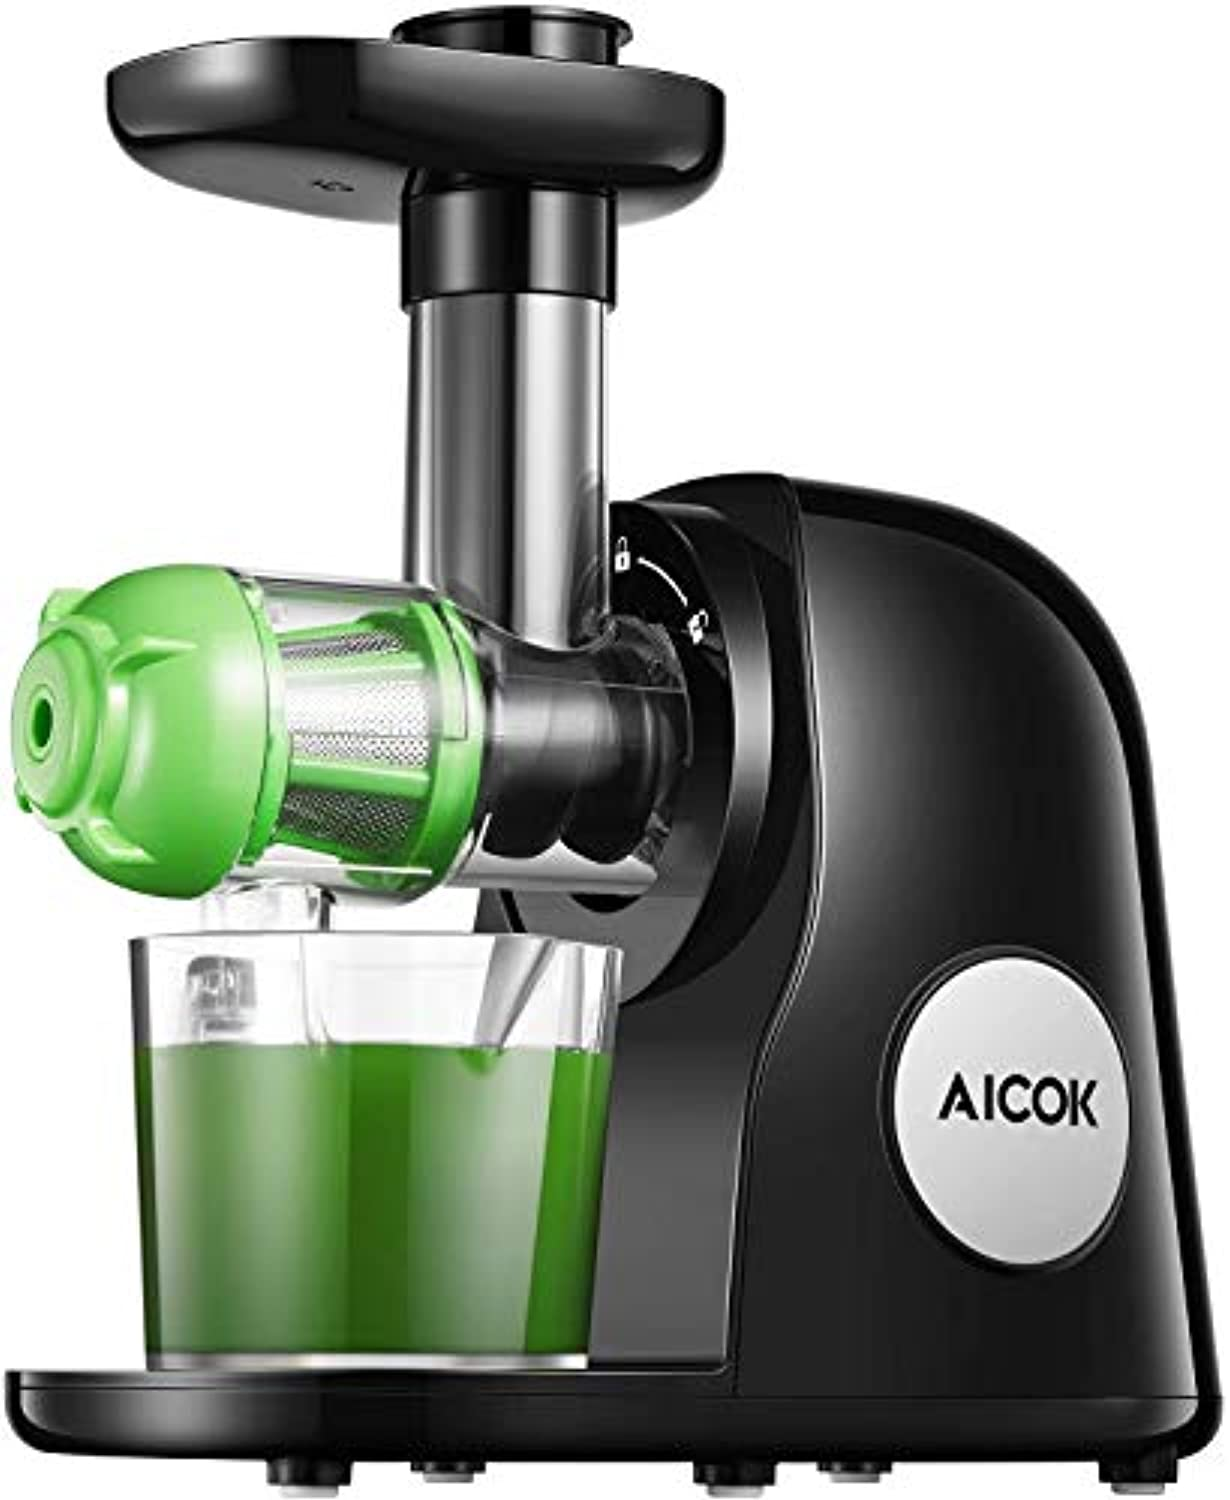 Juicer Machines, Aicok Slow Masticating Juicer Extractor Easy to Clean, Quiet Motor & Reverse Function, BPA-Free, Cold Press Juicer with Brush, Juice Recipes for Vegetables and Fruits - Prett